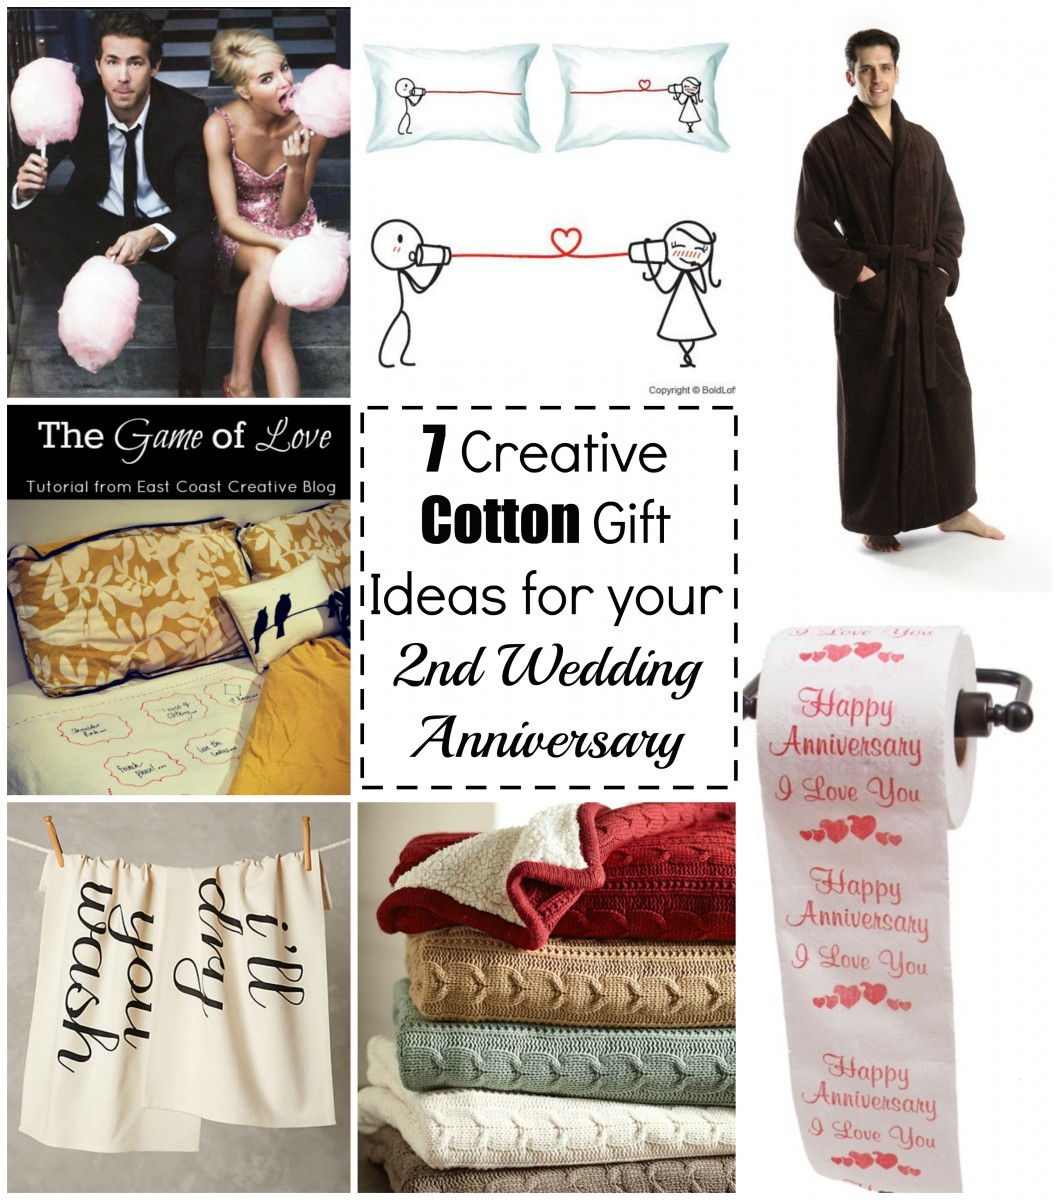 2nd Wedding Anniversary Gifts Cotton For Him : creative cotton gift ideas for your 2nd wedding anniversary her ...